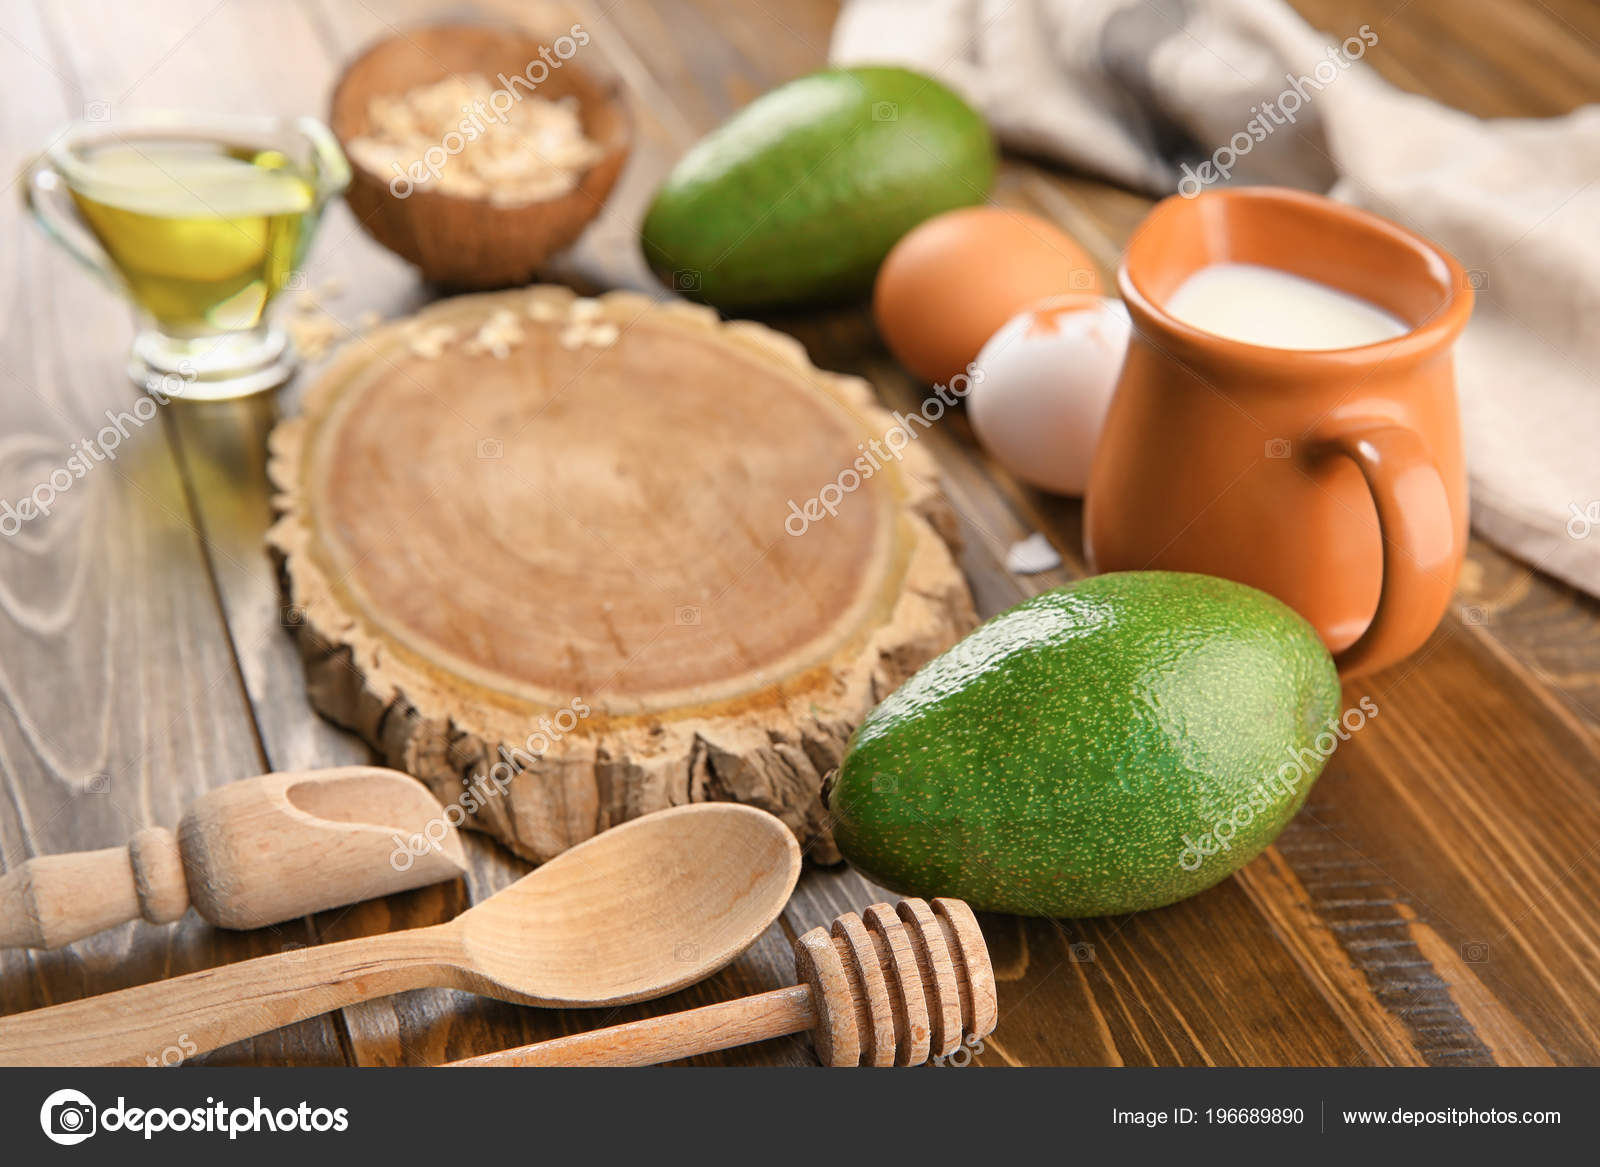 Wooden Board Natural Ingredients Homemade Cosmetics Table — Stock